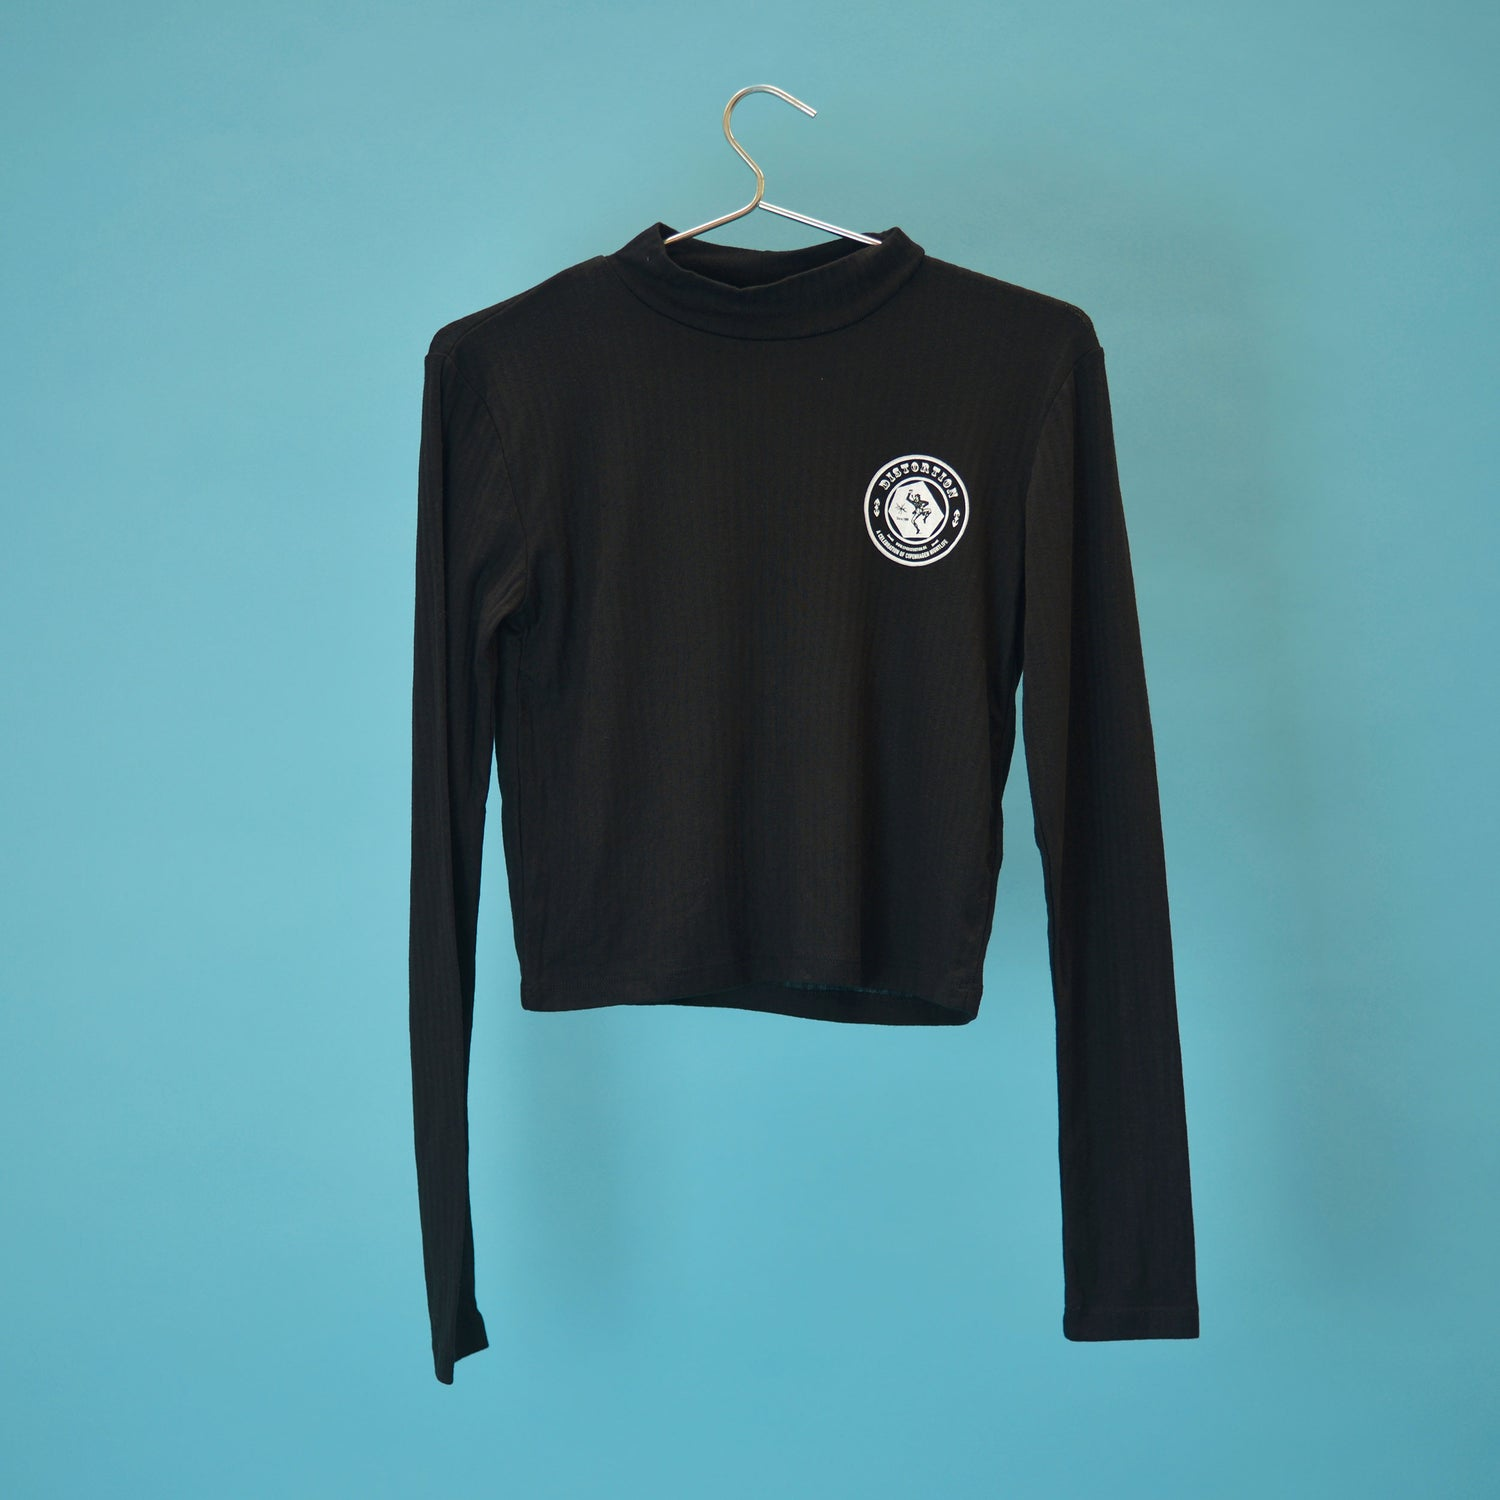 Image of Black Crop Top with Long Sleeves